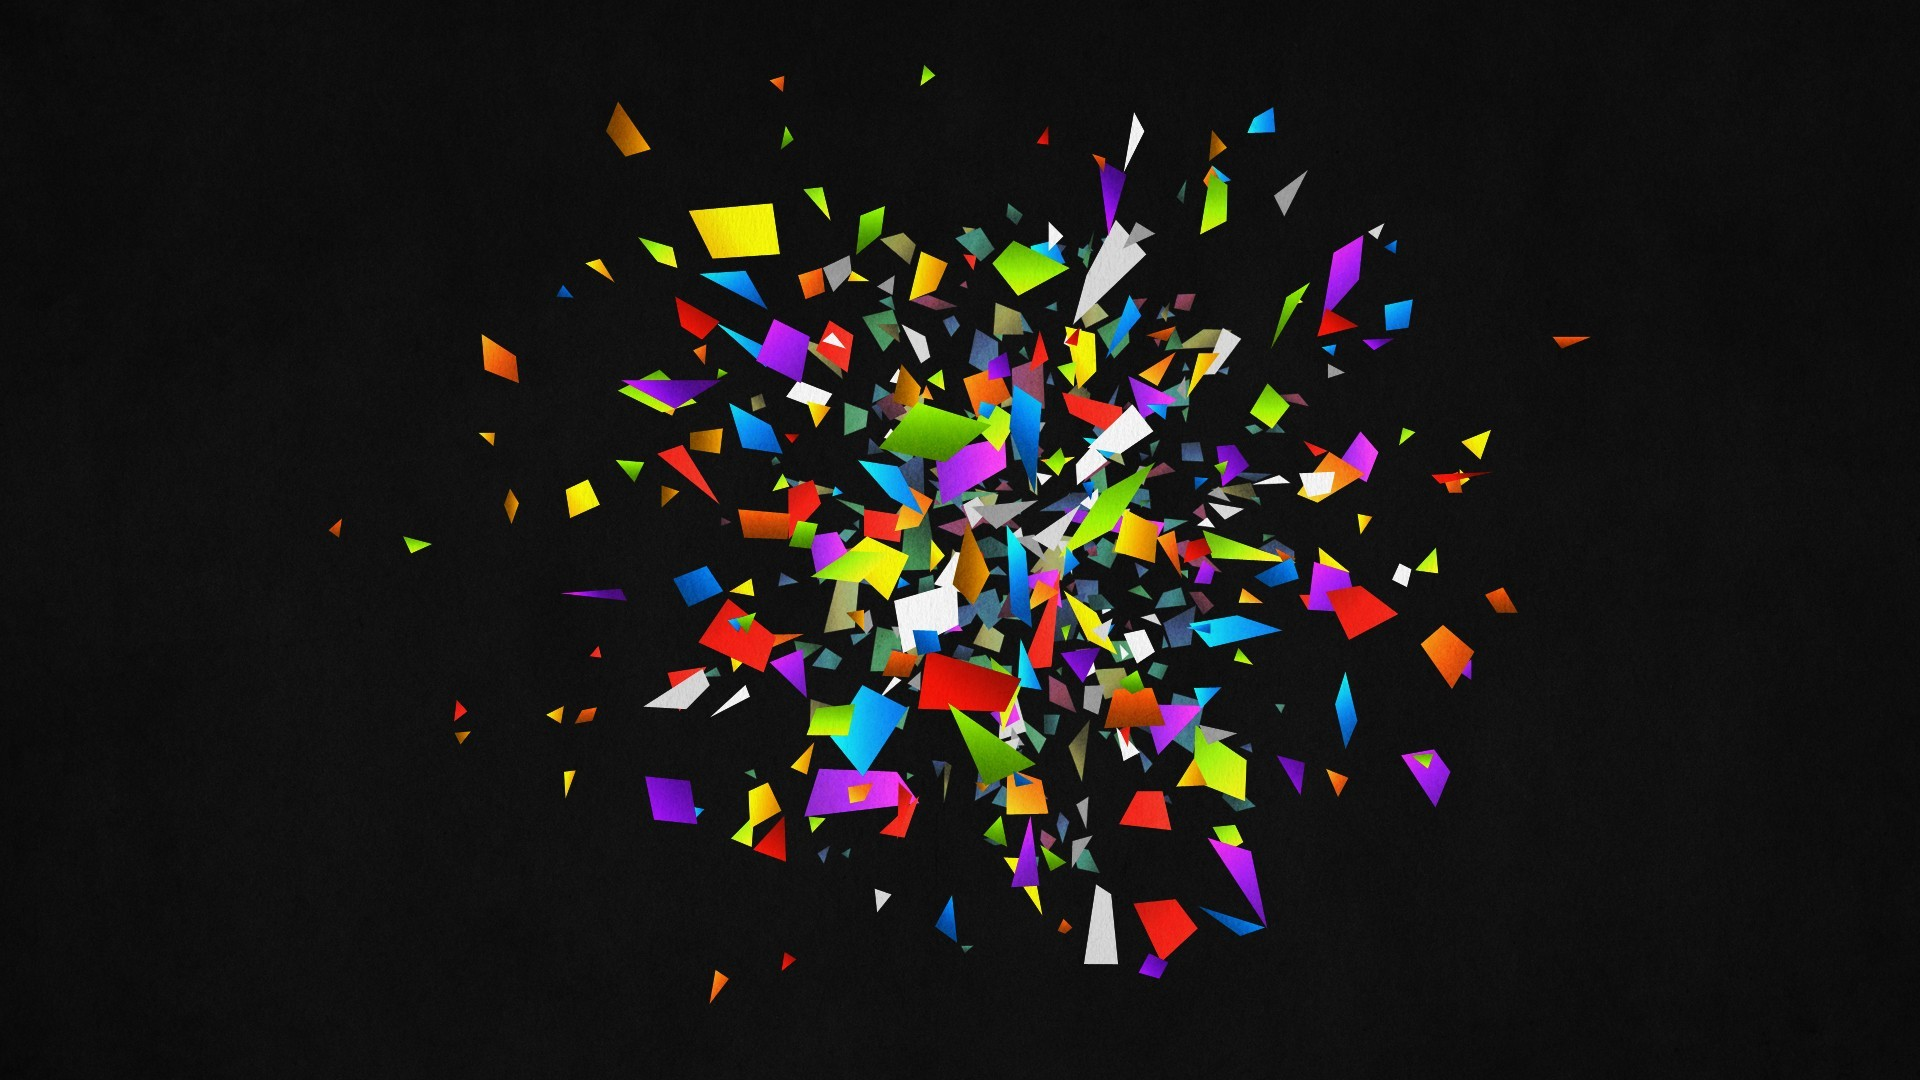 Res: 1920x1080, Broken Glass Abstract HD Picture Wallpaper